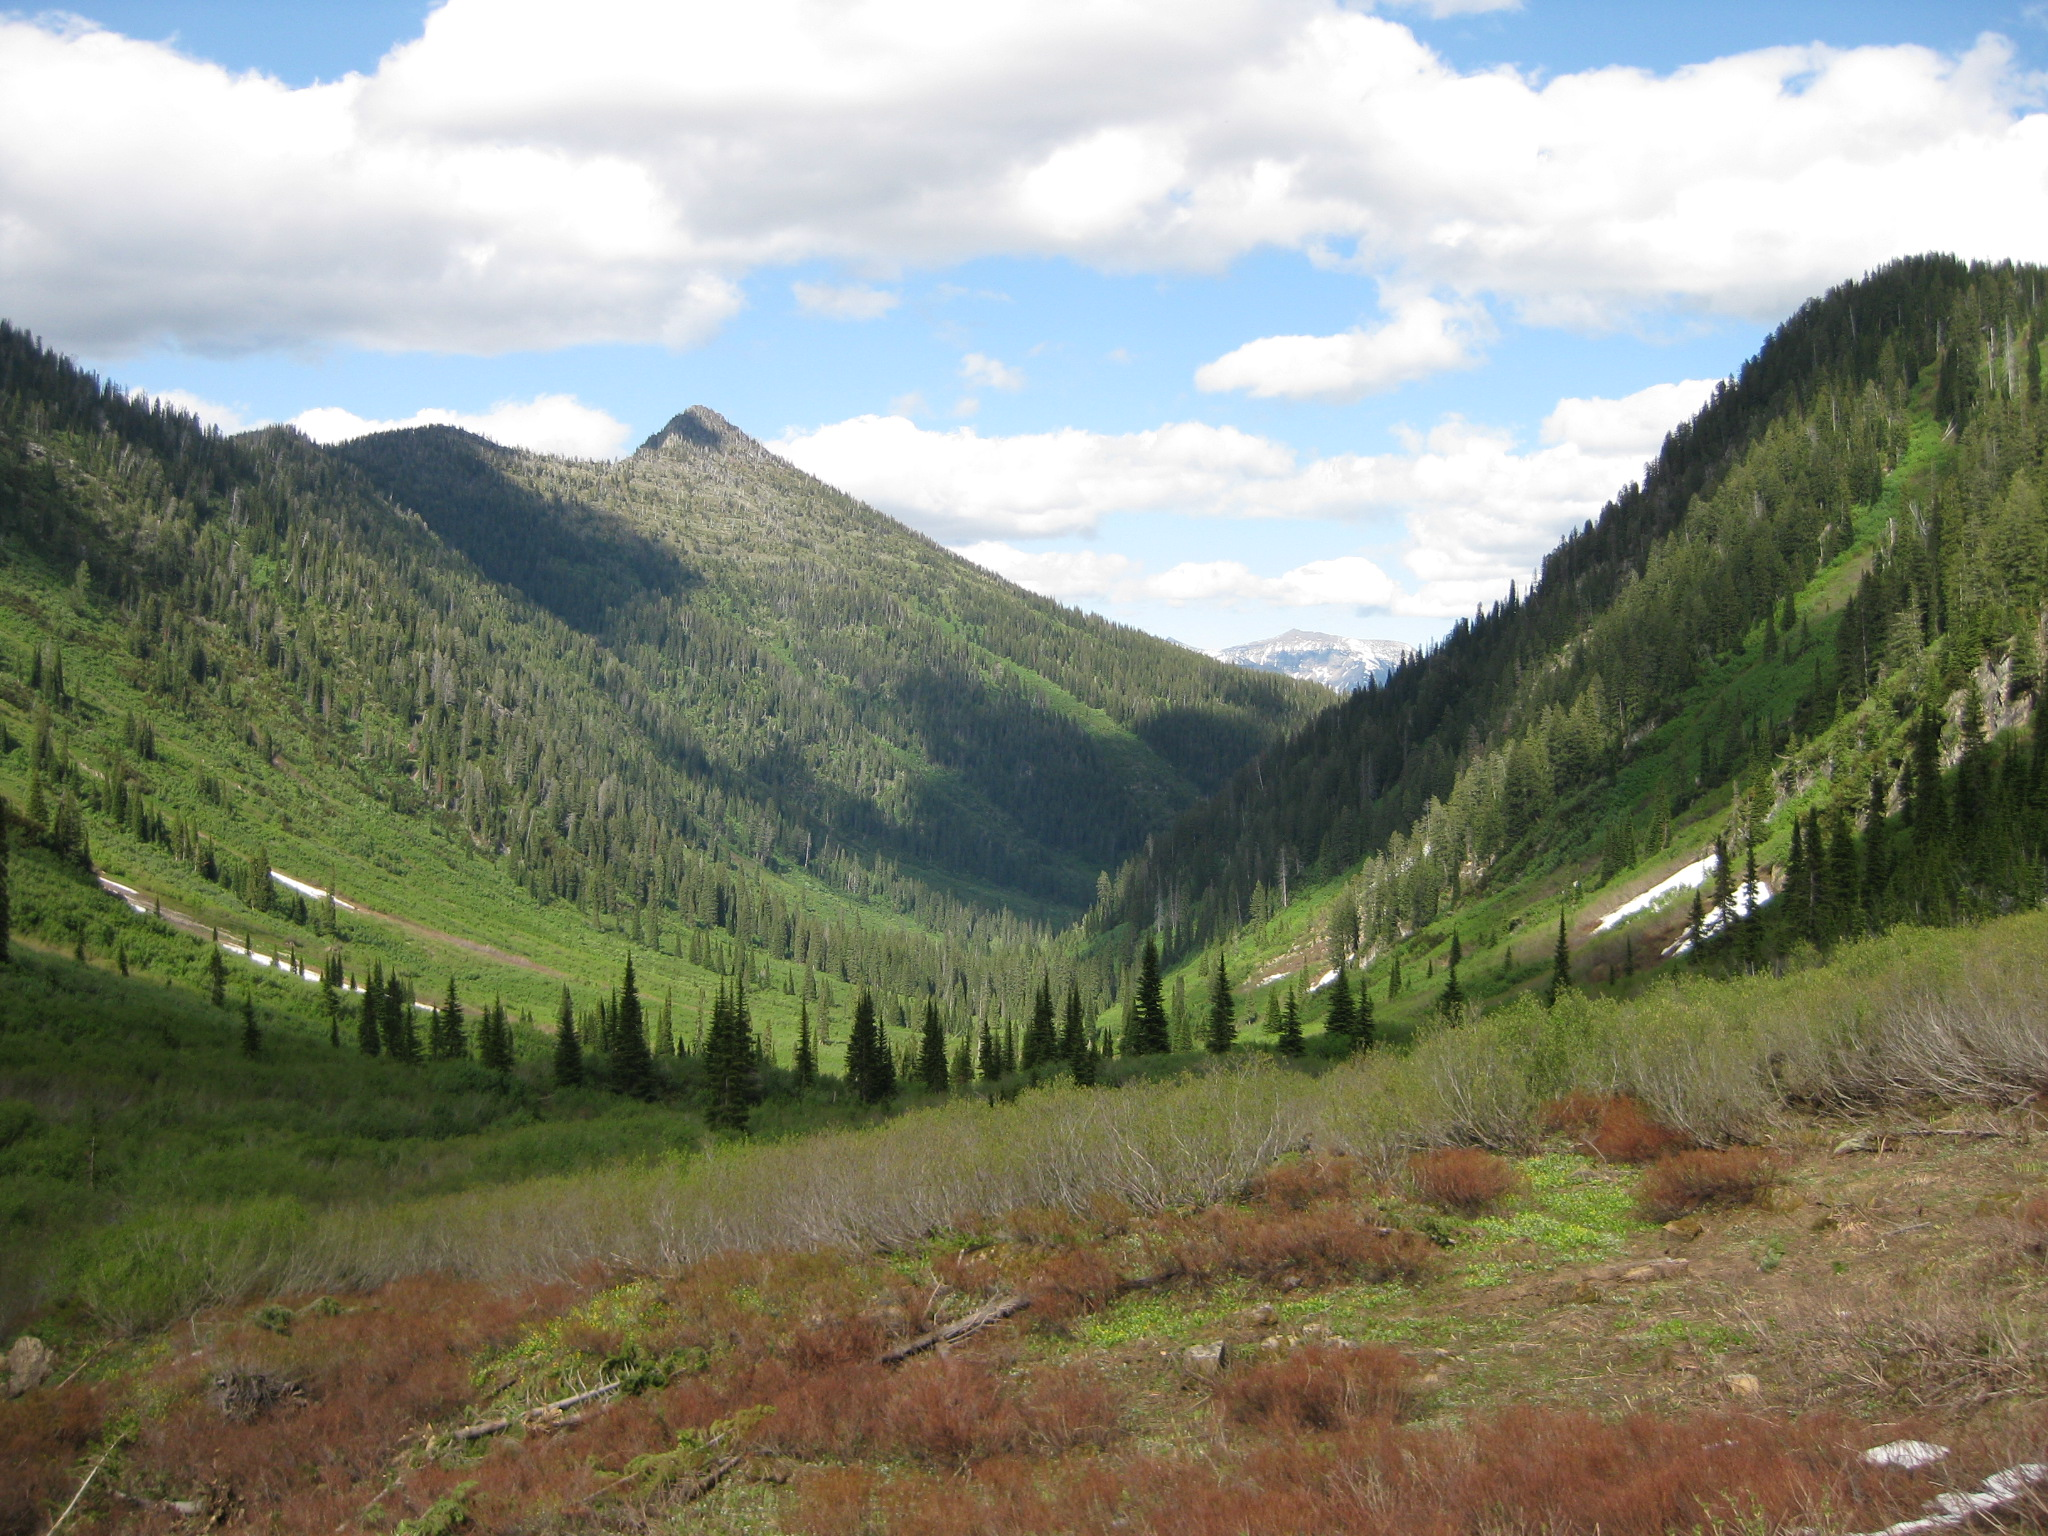 a view of mountains on the Hungry Horse Ranger District